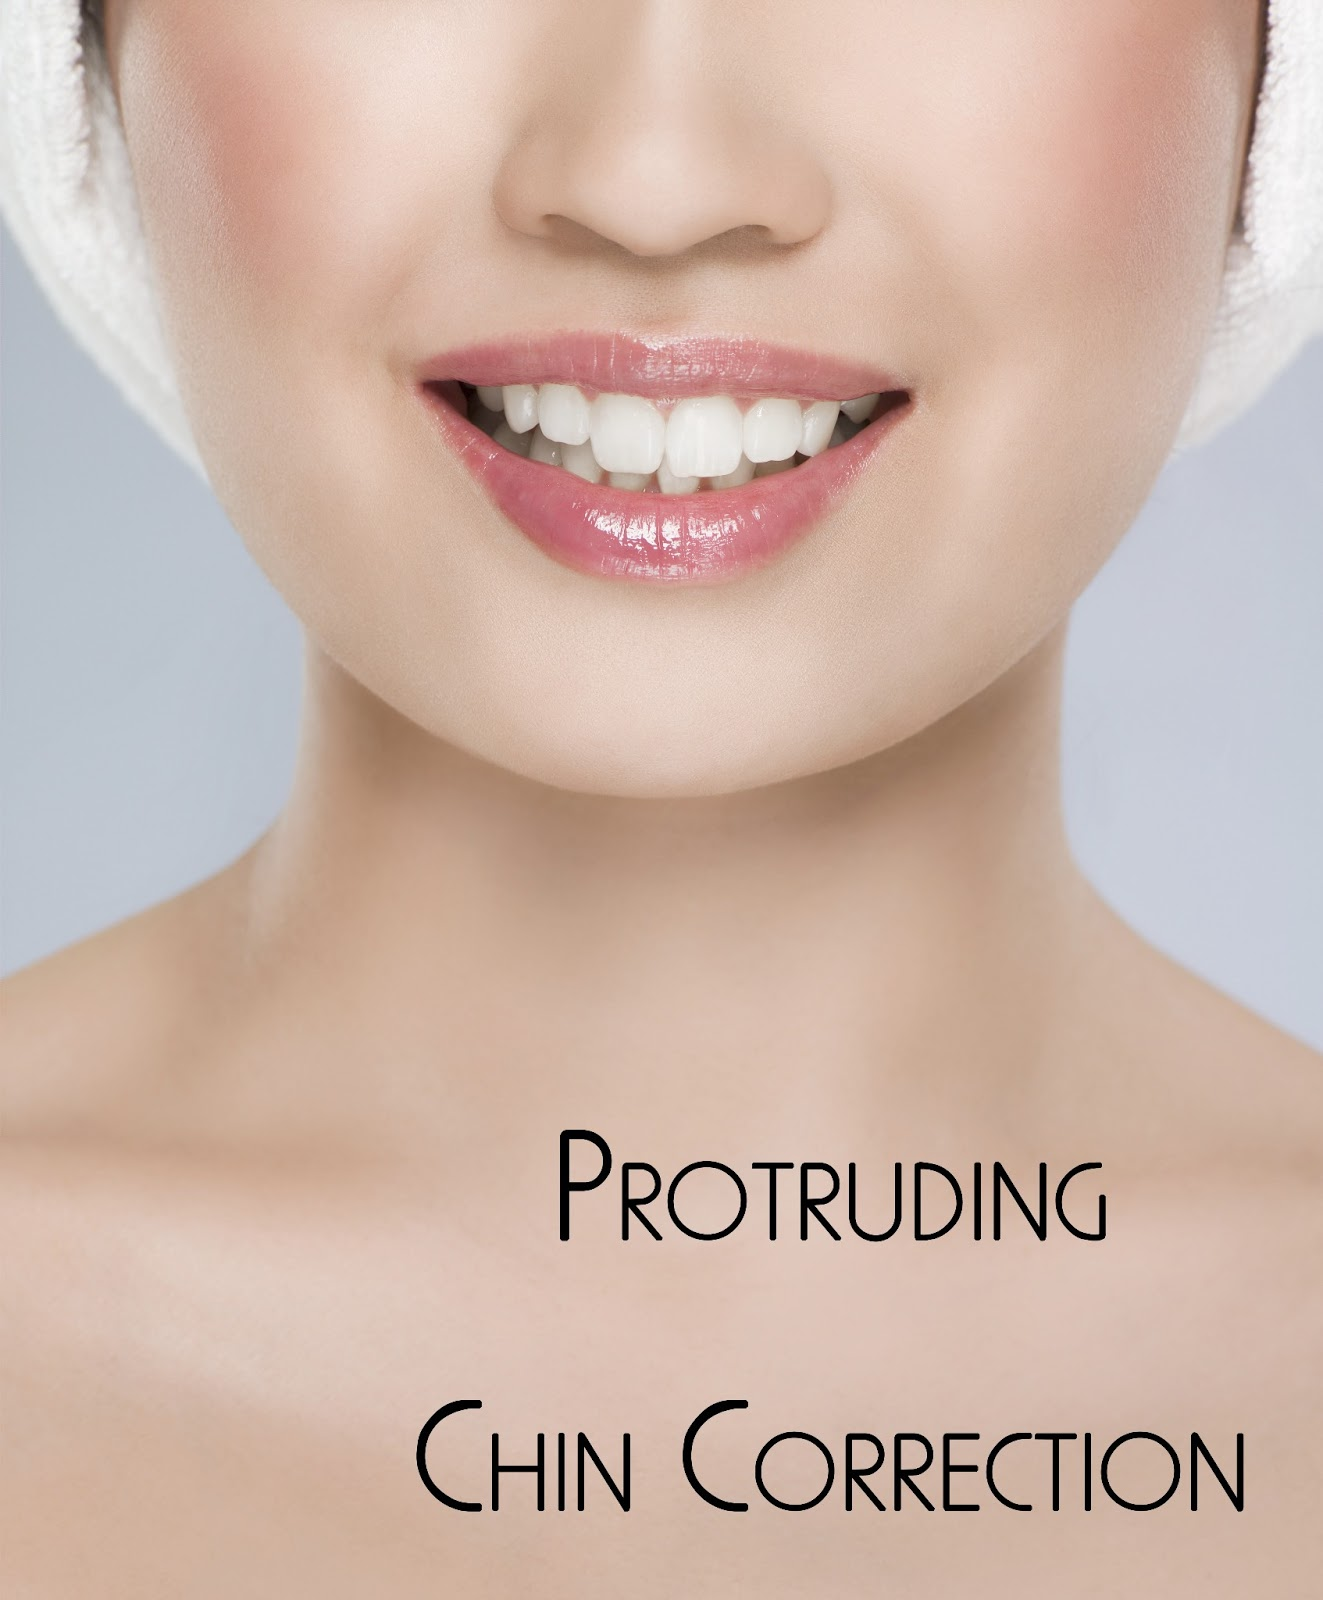 chin correction is used to create a more normal looking jaw and chin